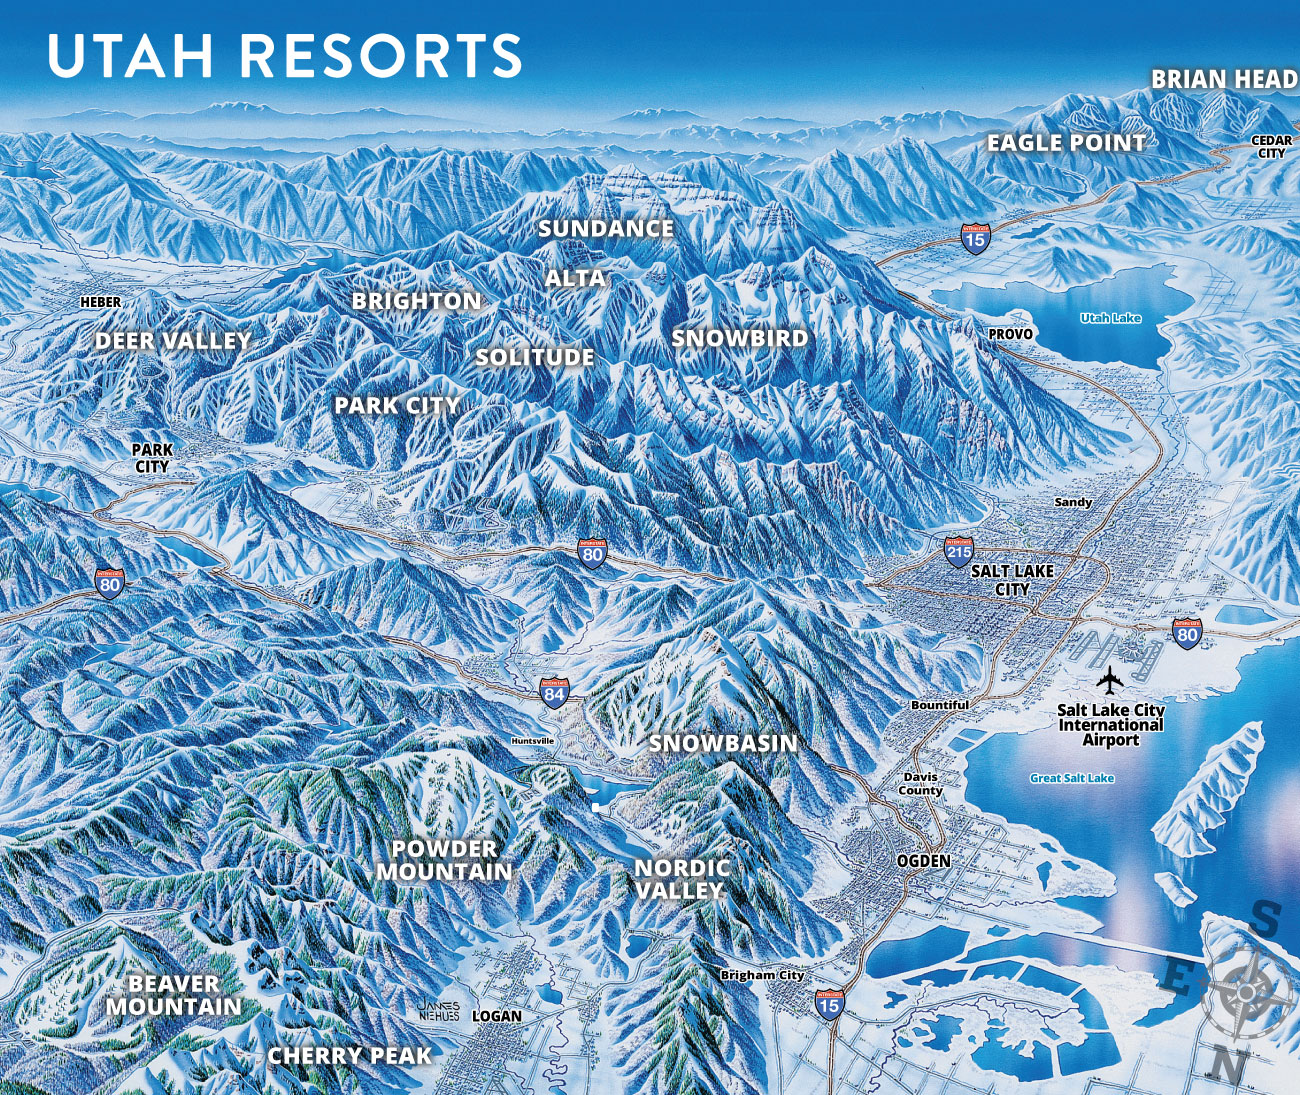 2016/17 utah ski resort opening dates - snowbrains